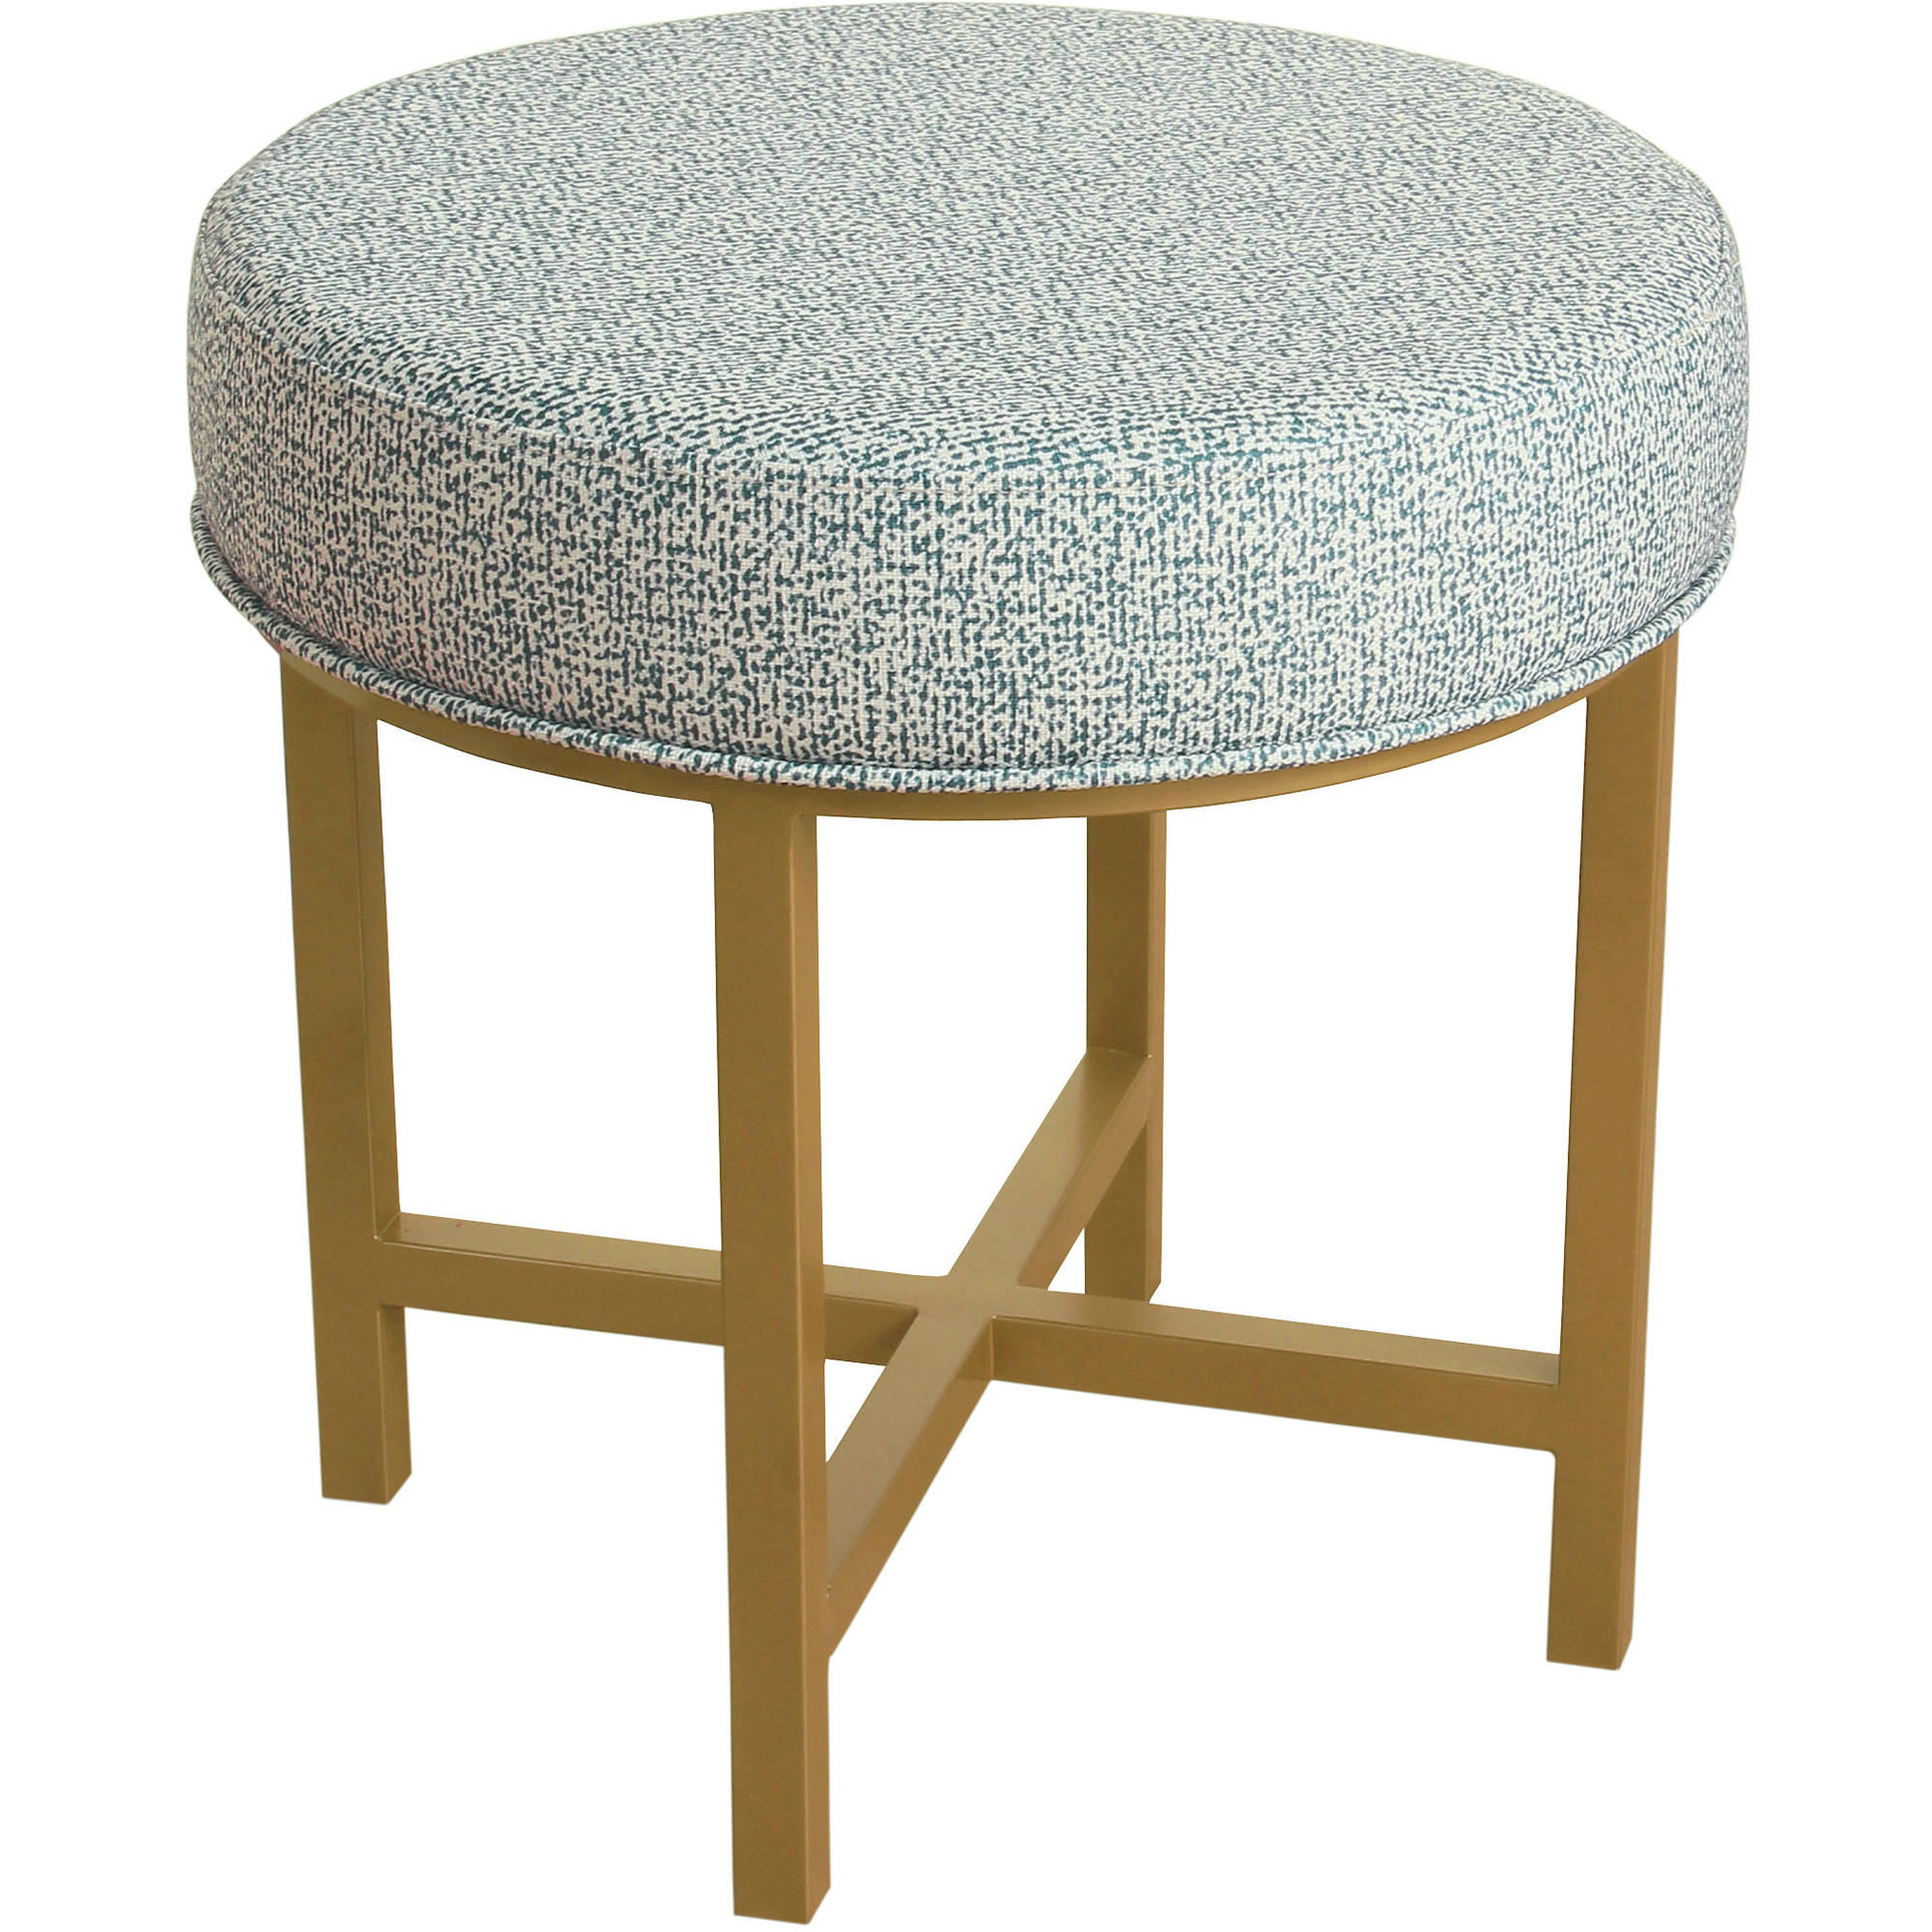 HomePop Decorative Round Ottoman with Metal Base, Multiple Colors